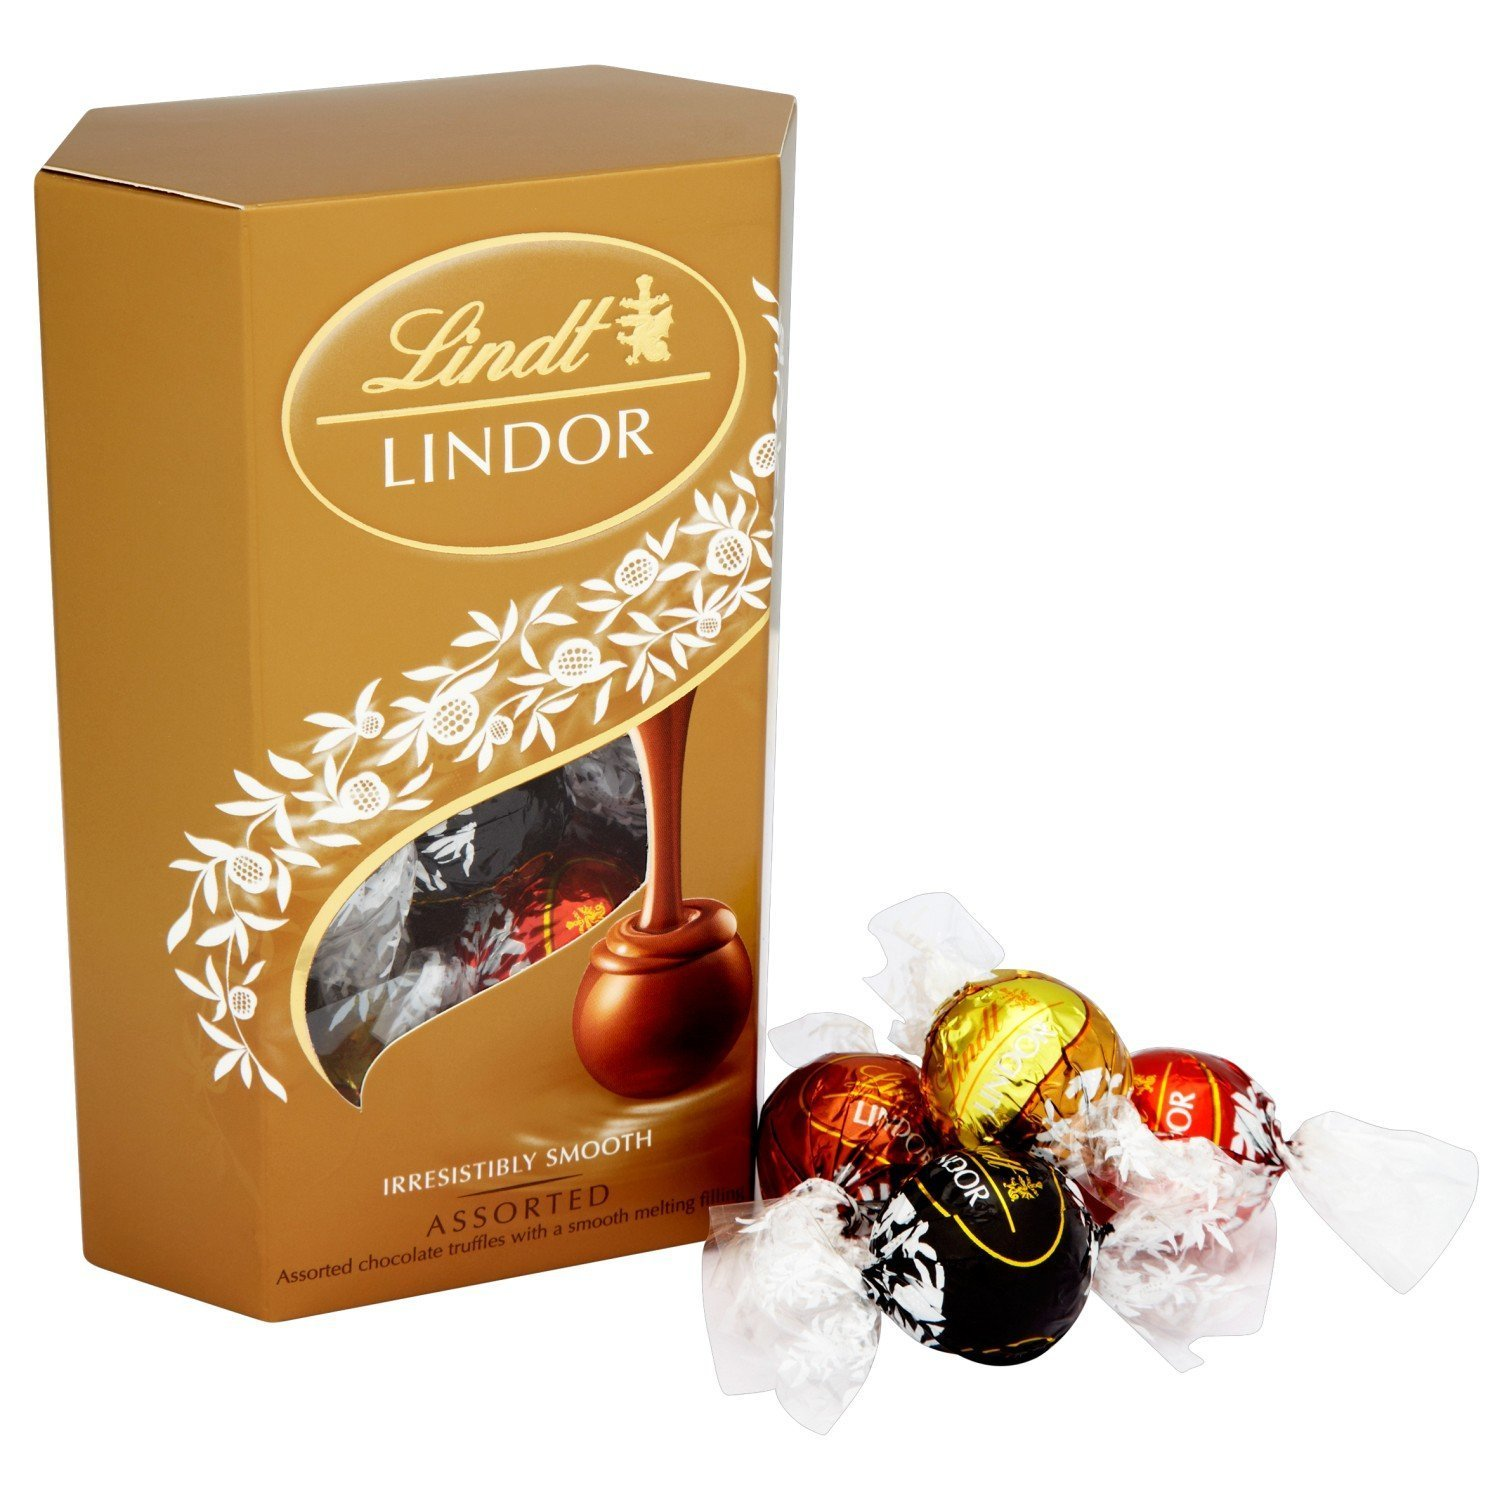 Lindt Lindor Assorted Chocolate Truffles 200G X 5 by Lindt